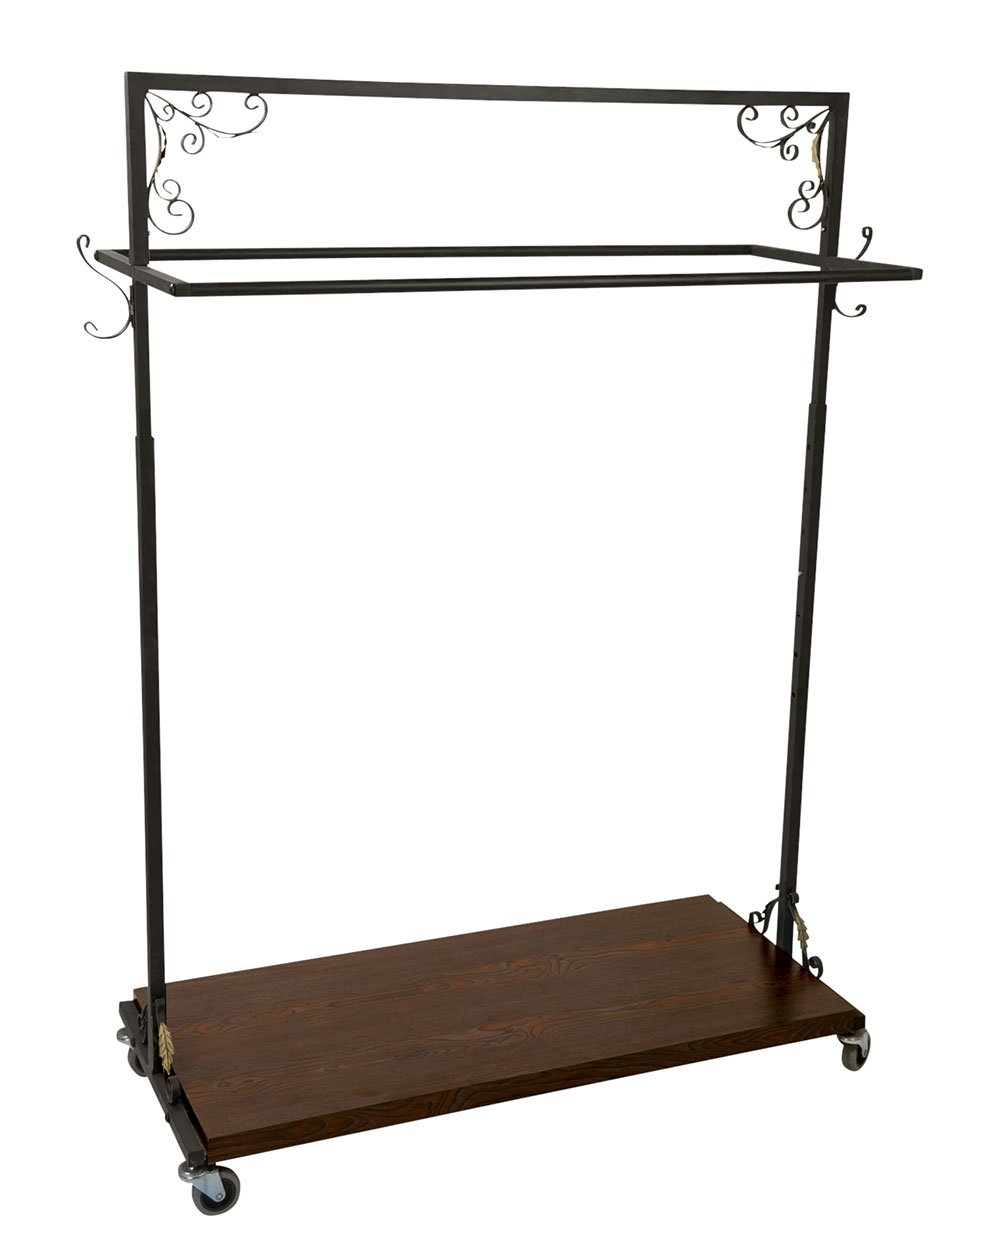 SSWBasics Boutique Vintage Double-Rail Rolling Clothing Rack